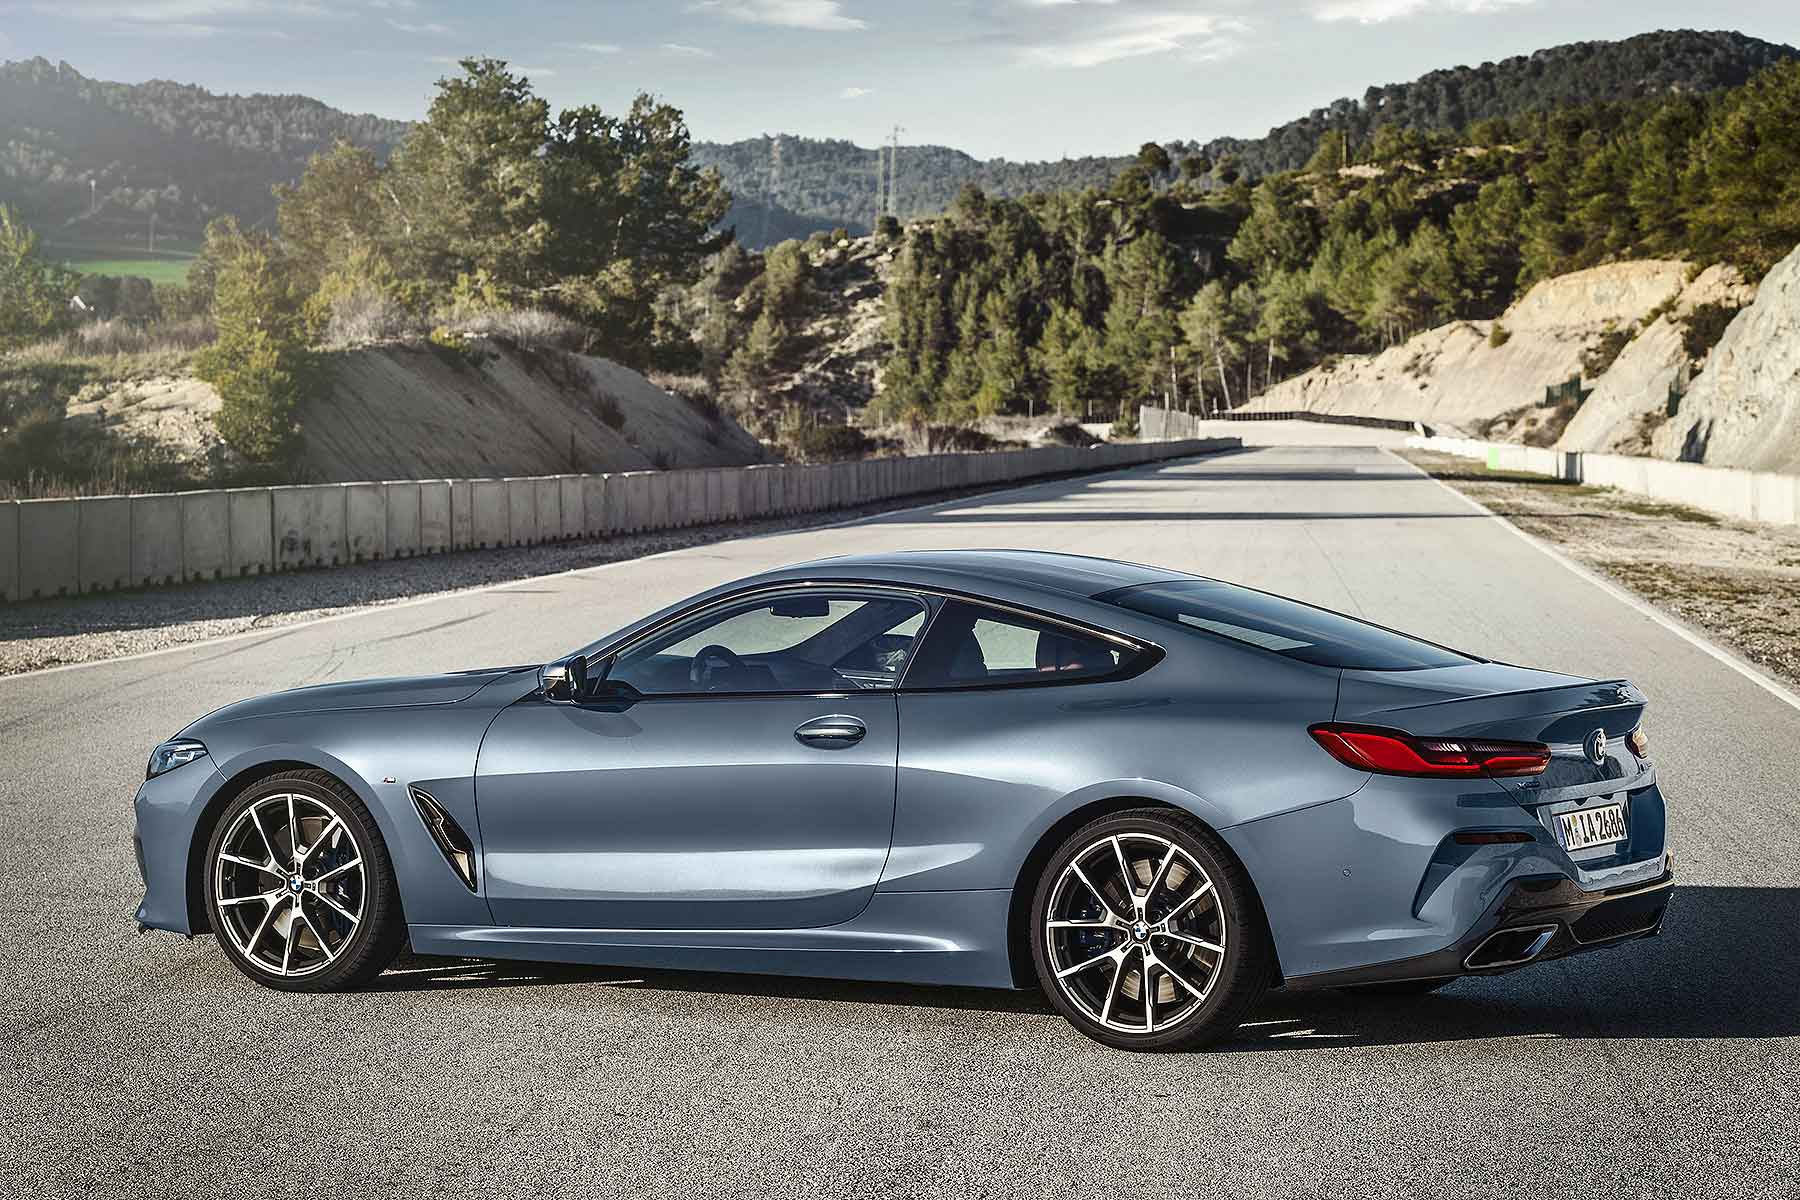 New BMW 8 Series Coupe Revealed